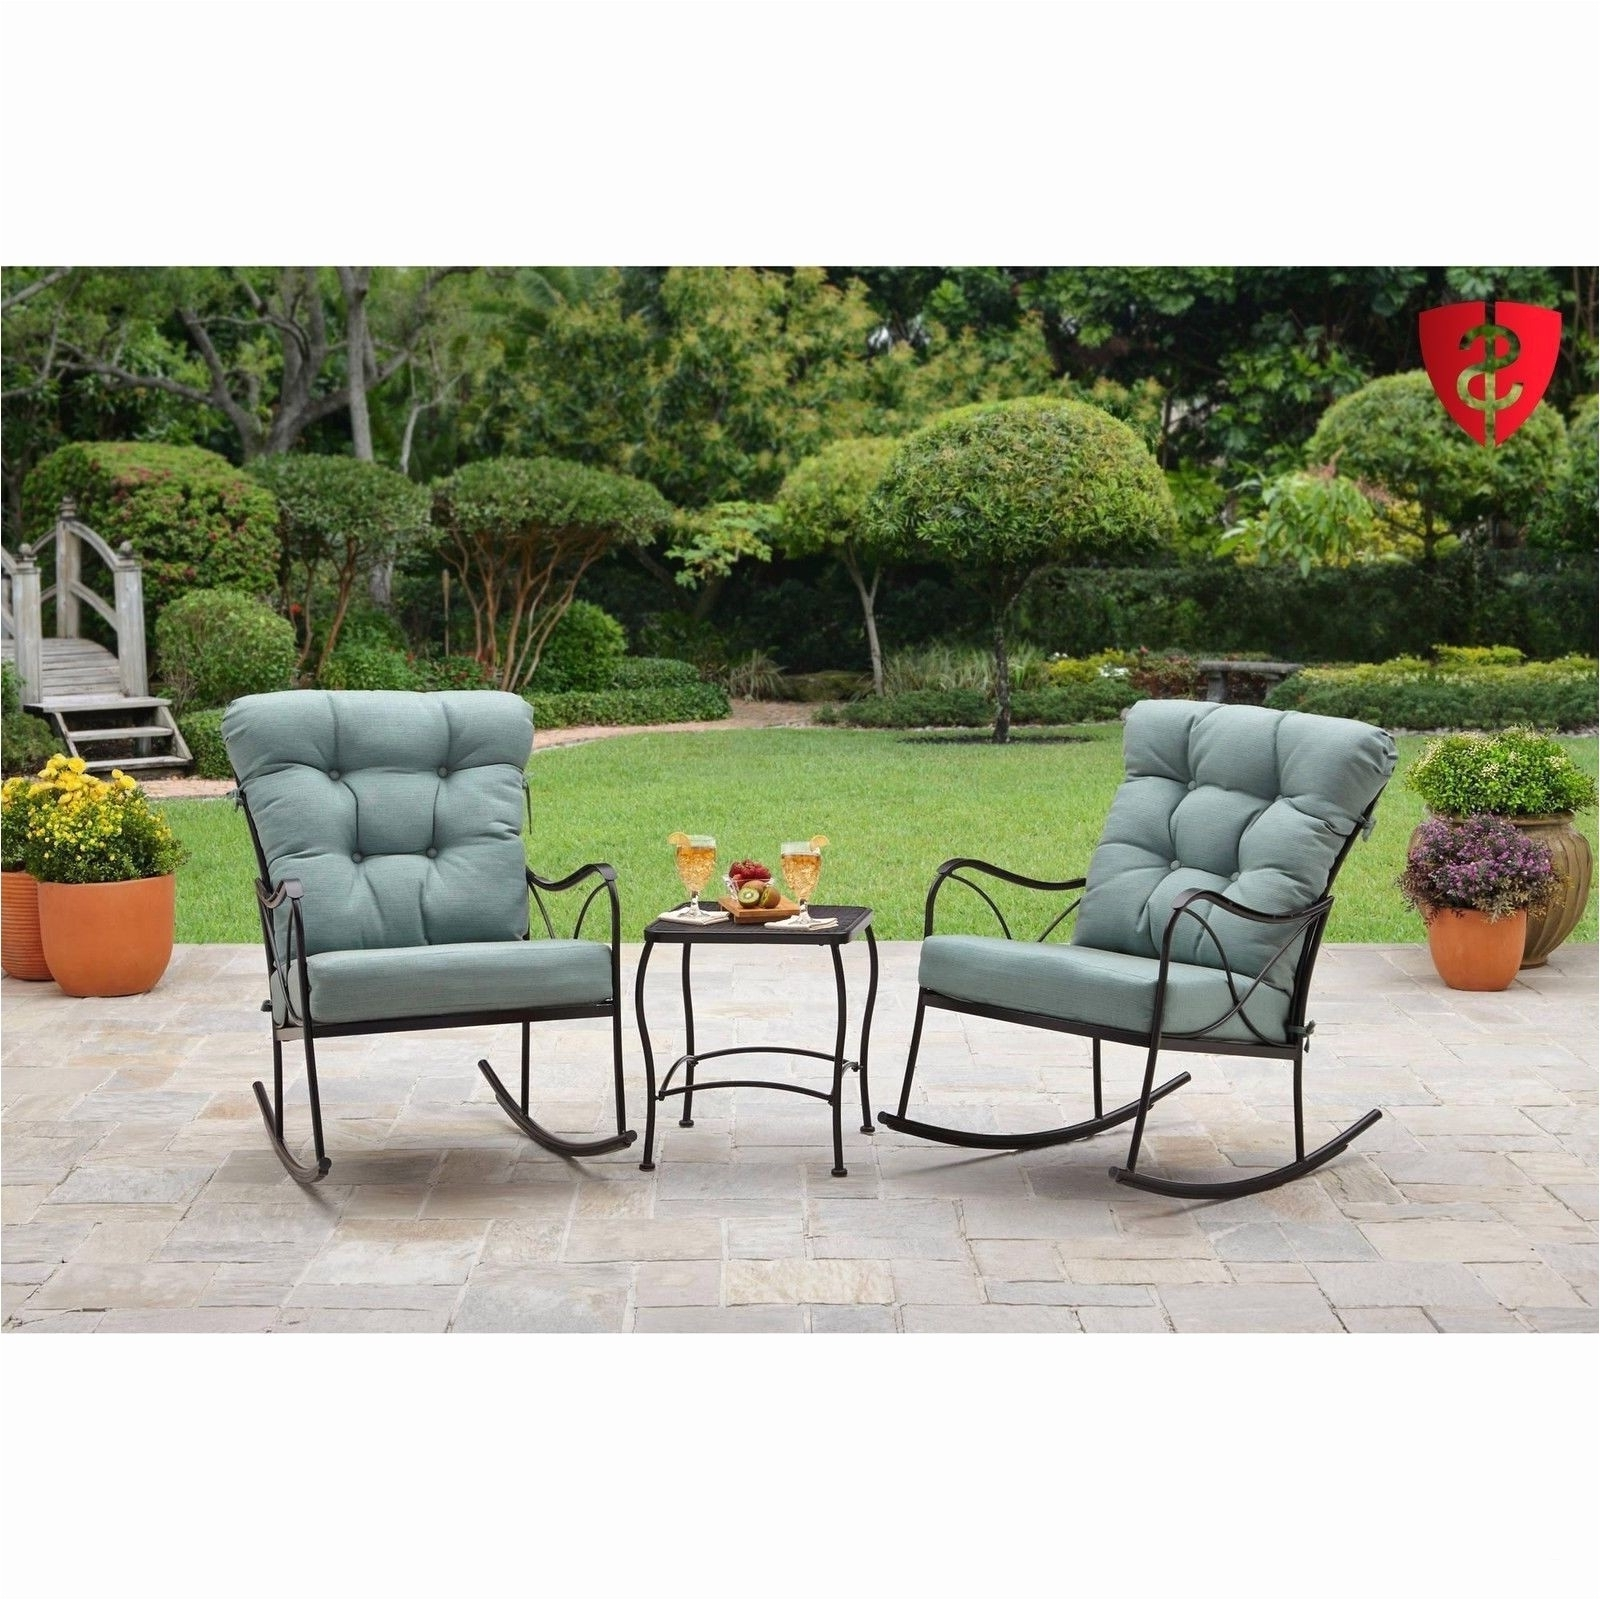 Most Popular Patio Conversation Sets Under 200 Inside Cheap Patio Furniture Sets Under 200 Exclusive The Best Outdoor (View 13 of 15)